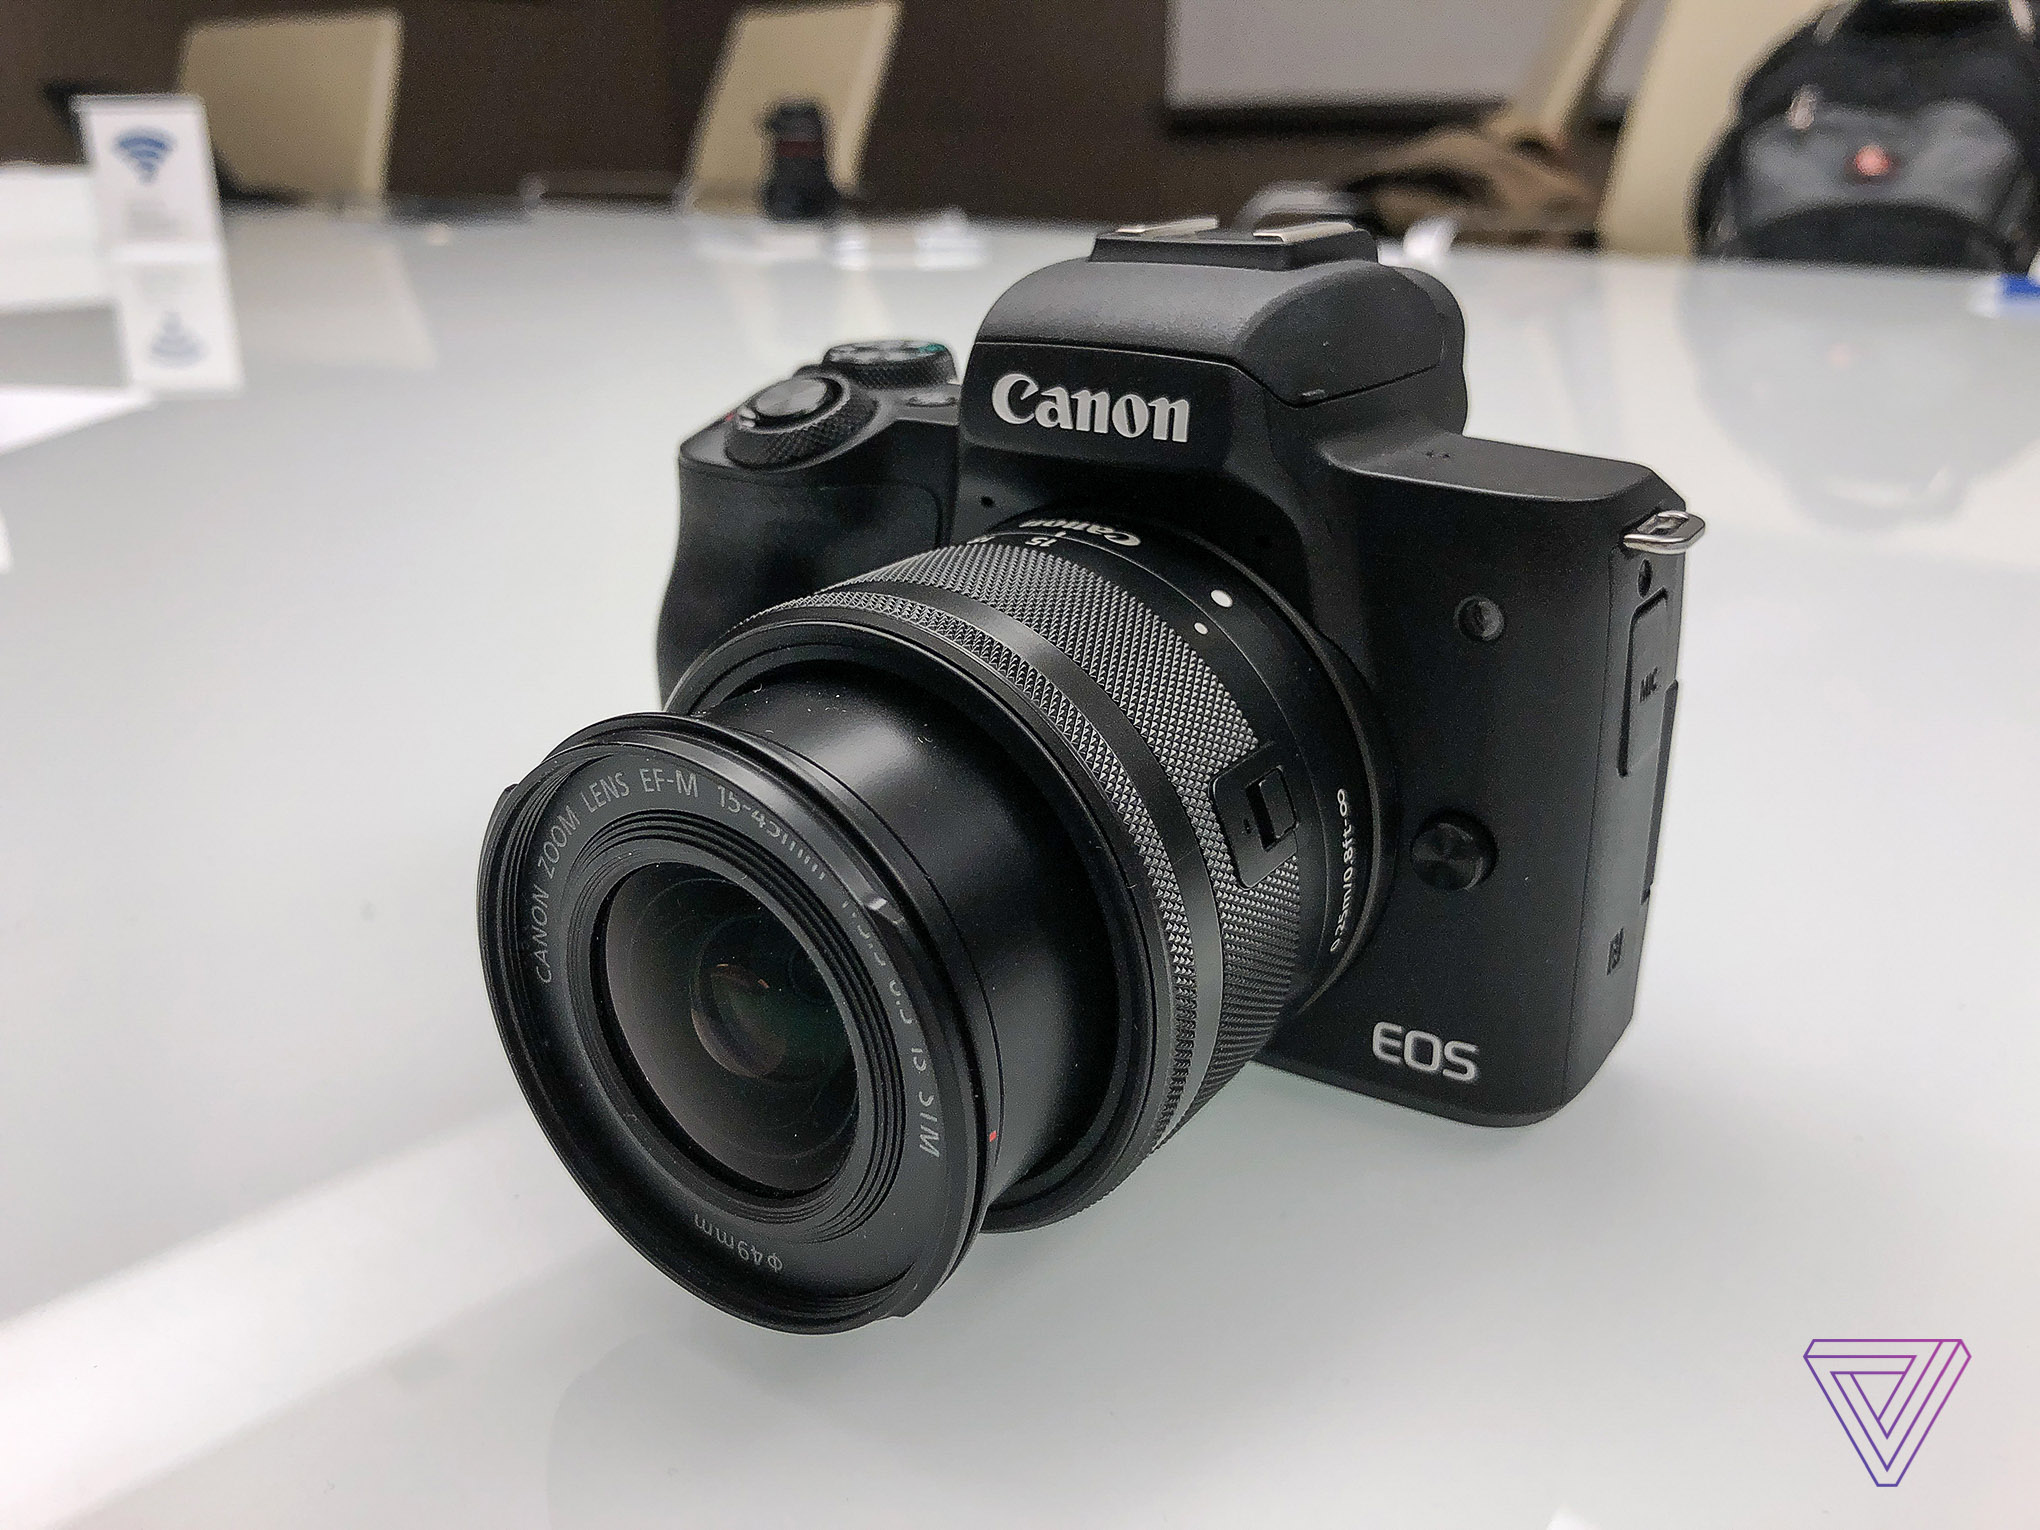 Canon's newest mirrorless camera shoots 4K video - The Verge